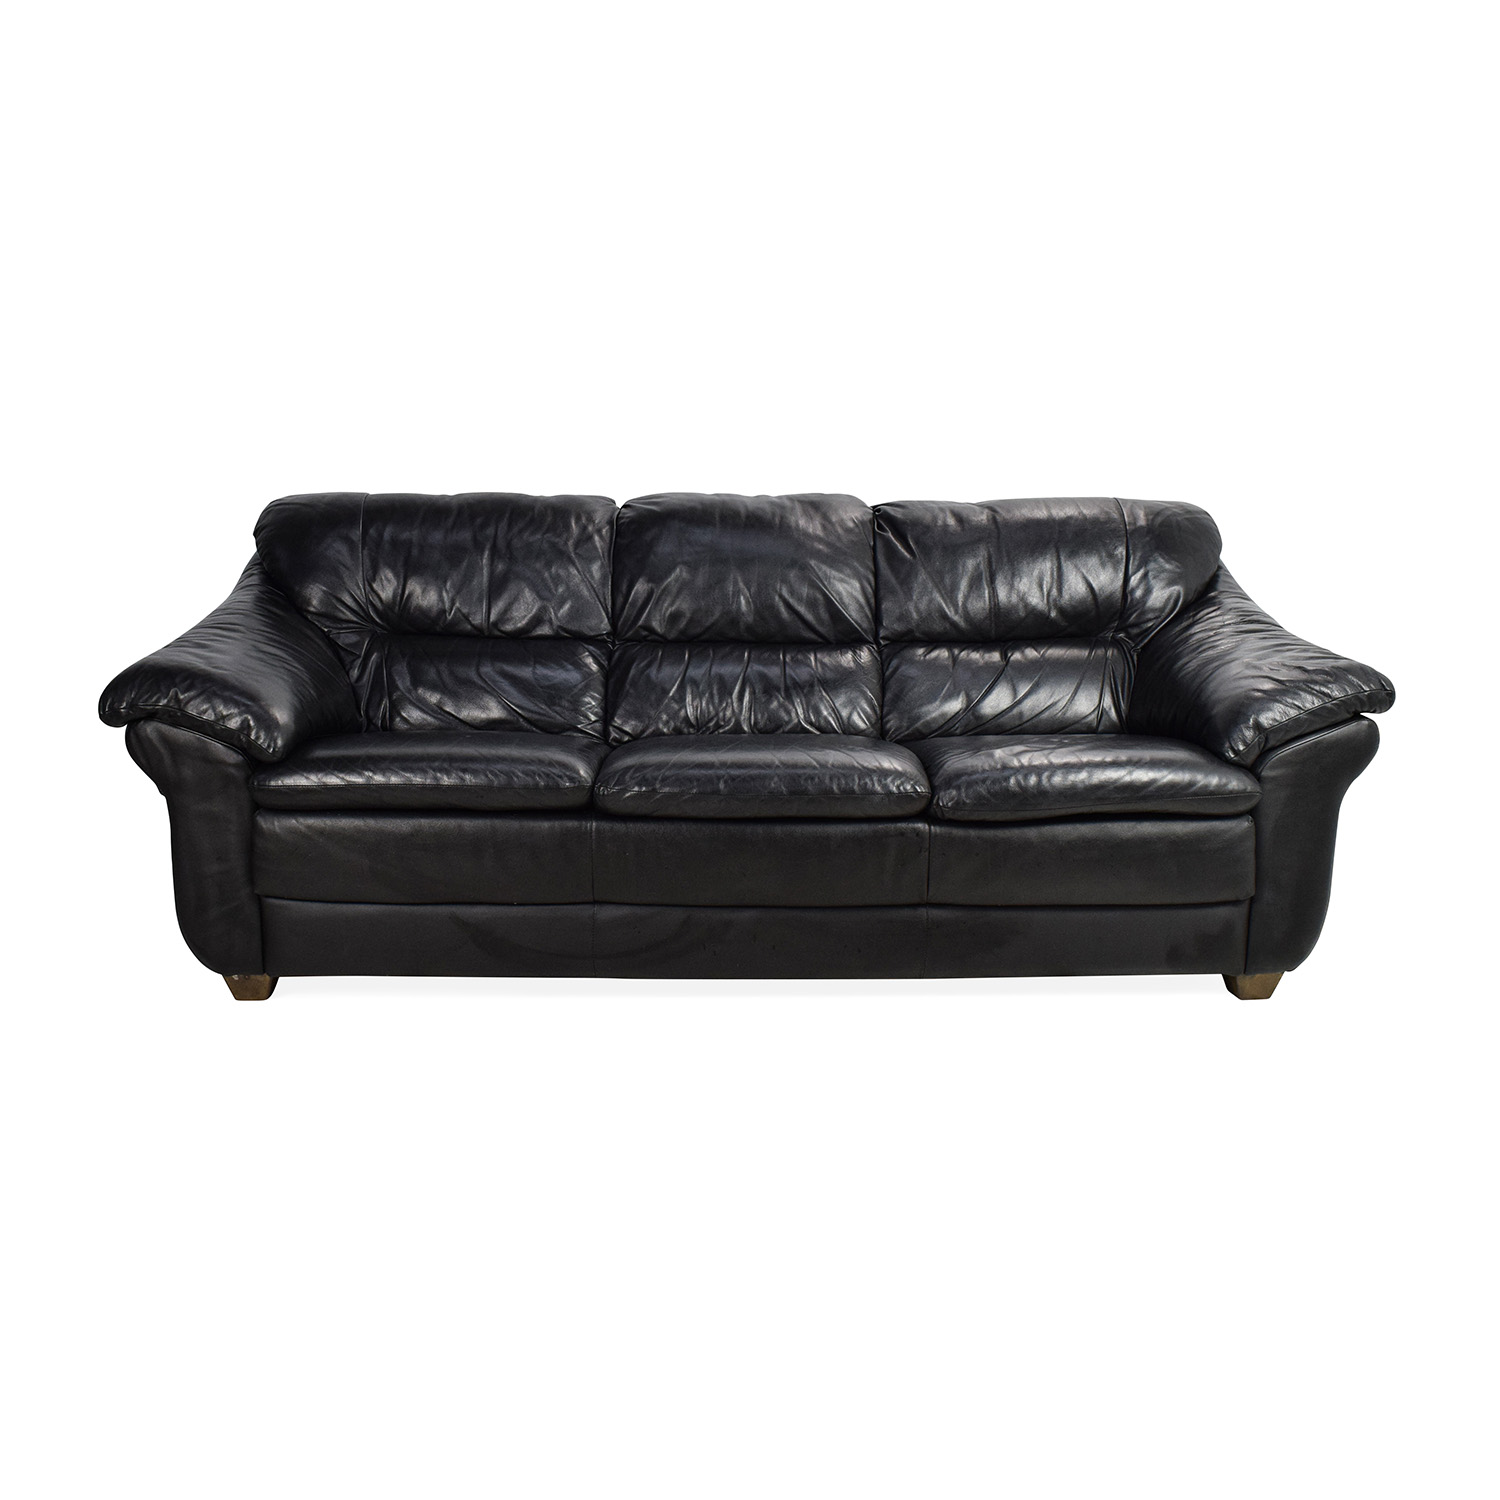 Natuzzi Italian Black Leather Sofa